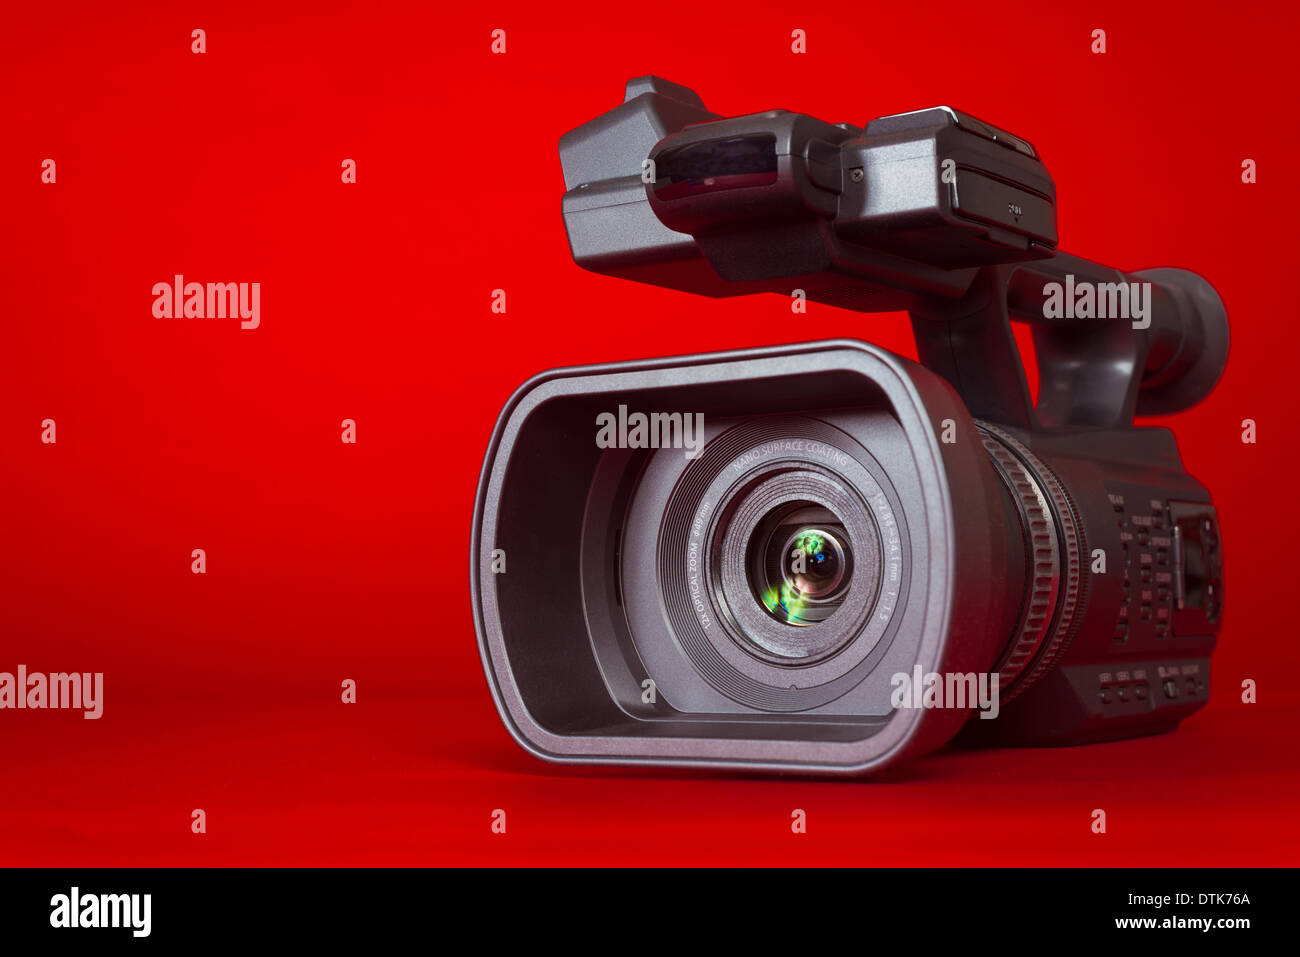 A black video camera on a red background with copy space - Stock Image